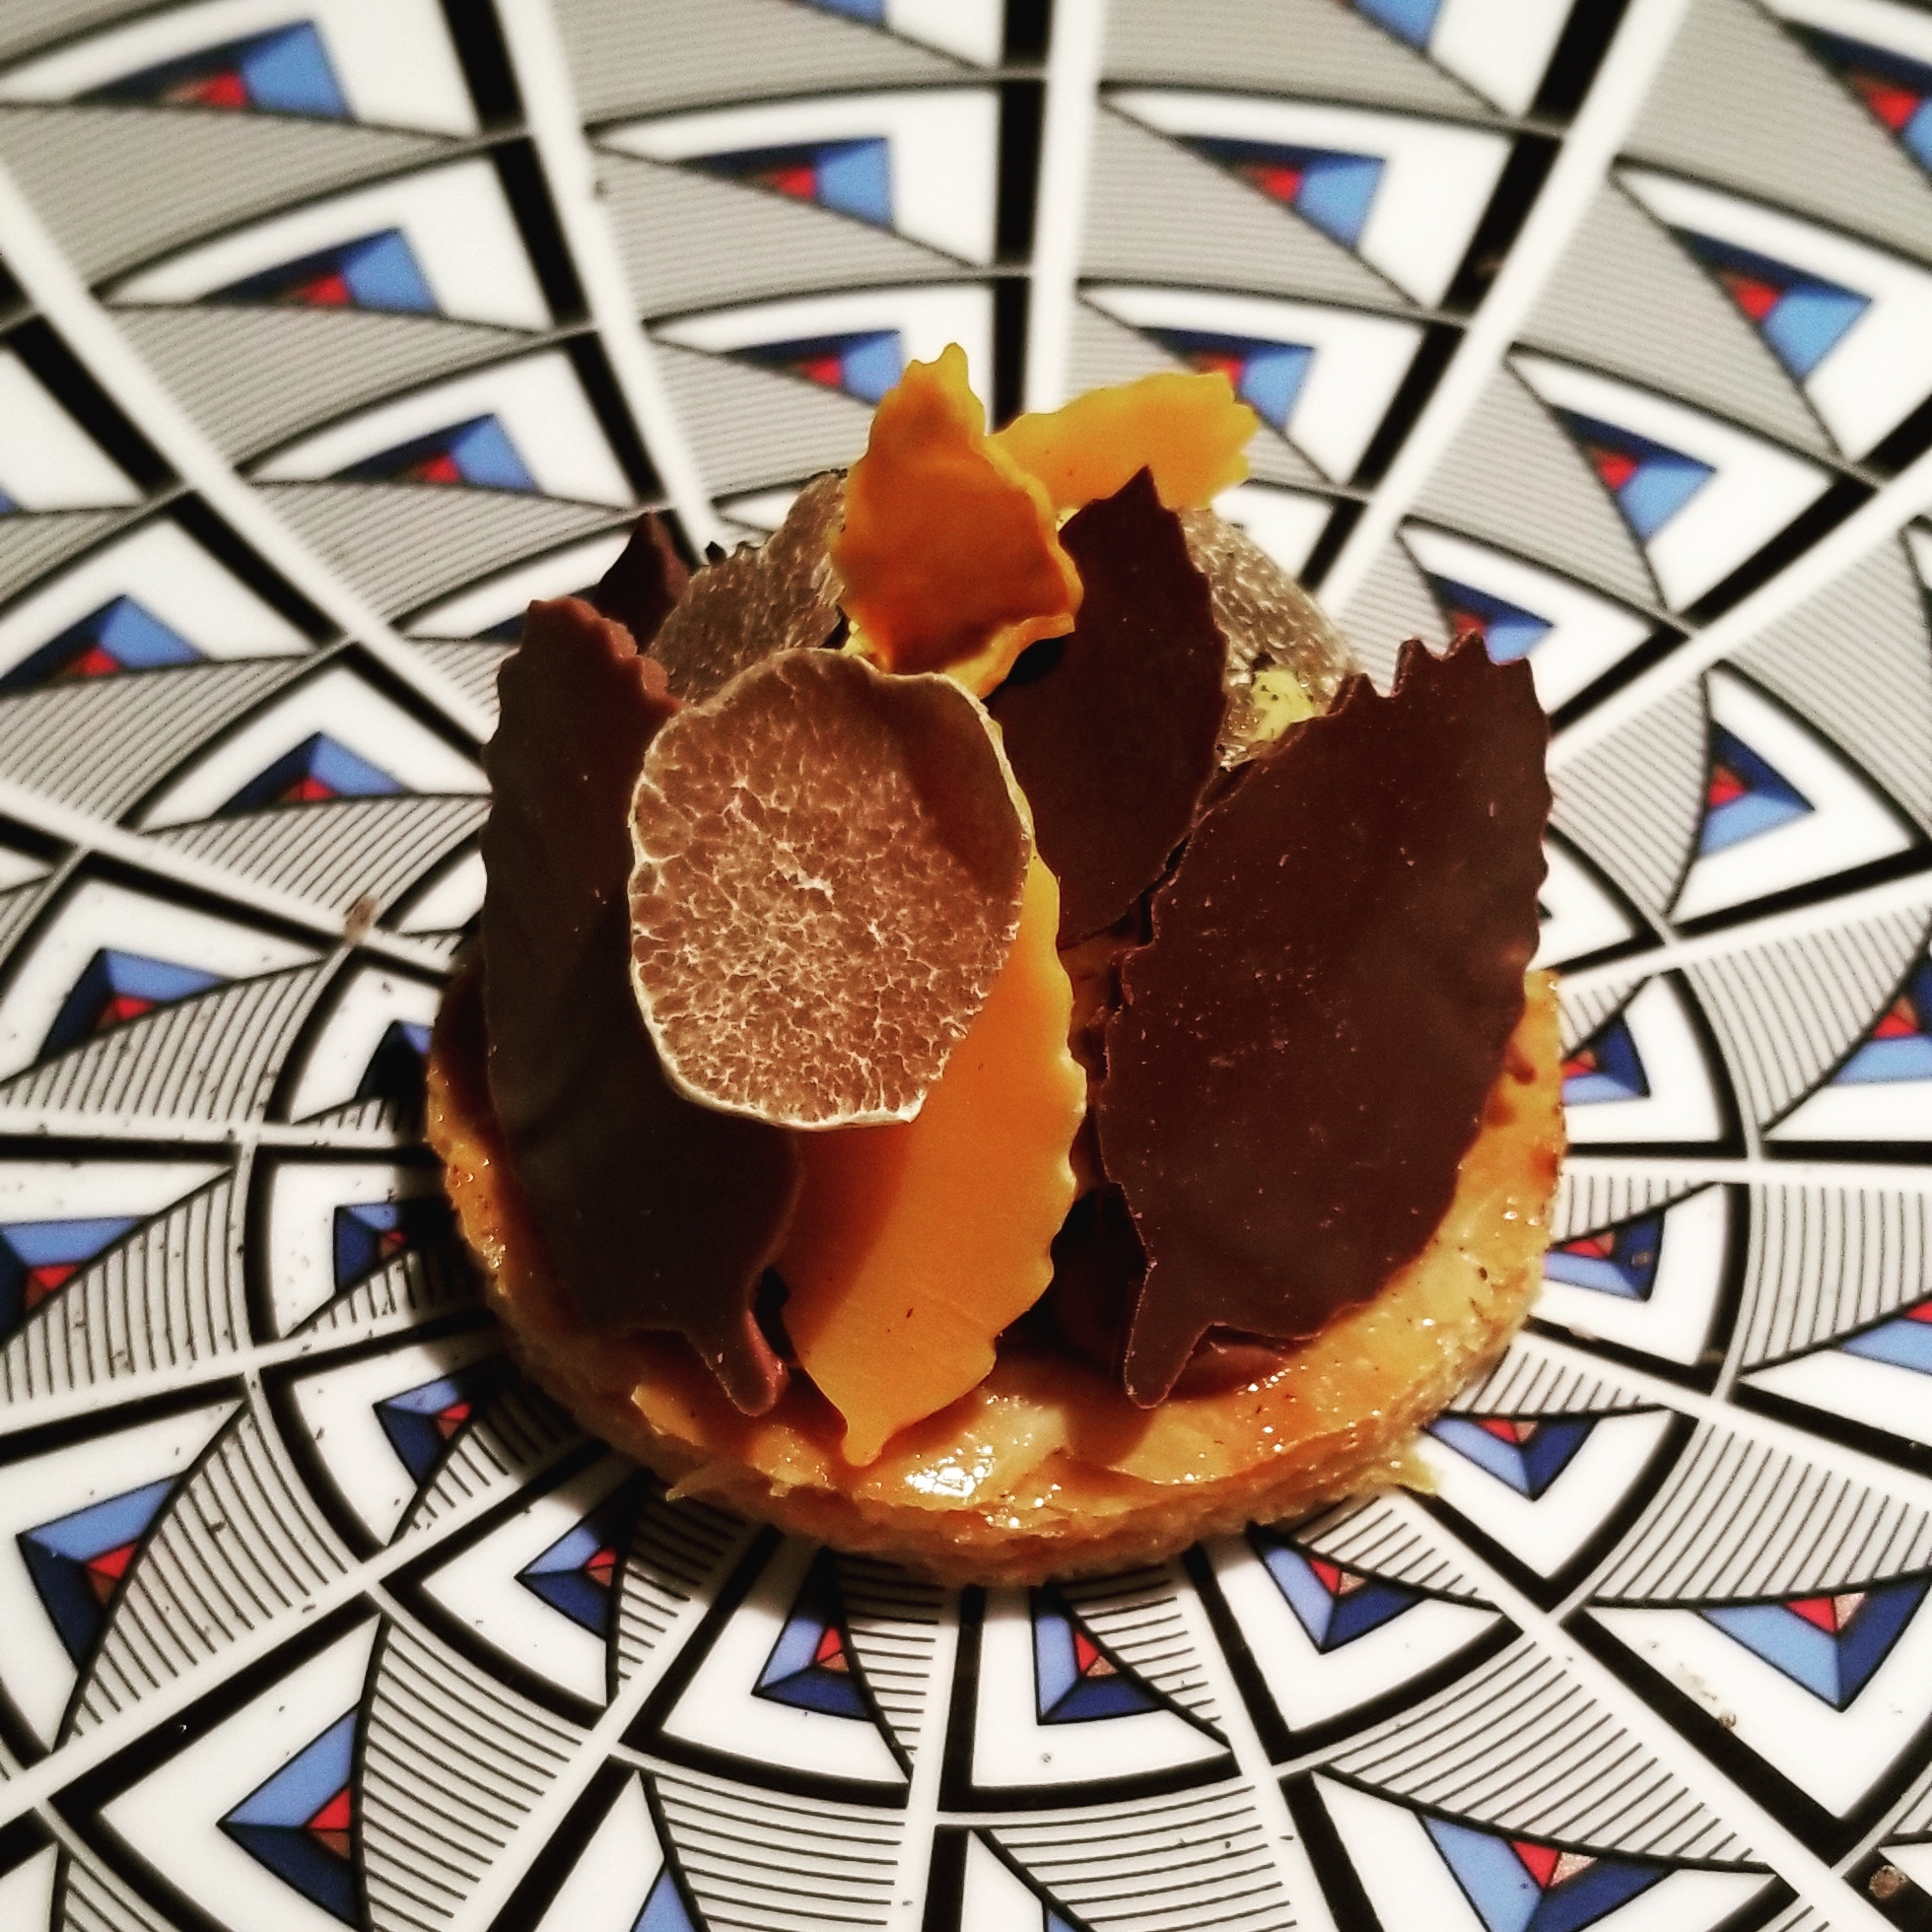 "Millefoglie di millefoglie""    Layers of pastry topped with black & white truffle, pumpkin, and leaves of chocolate."